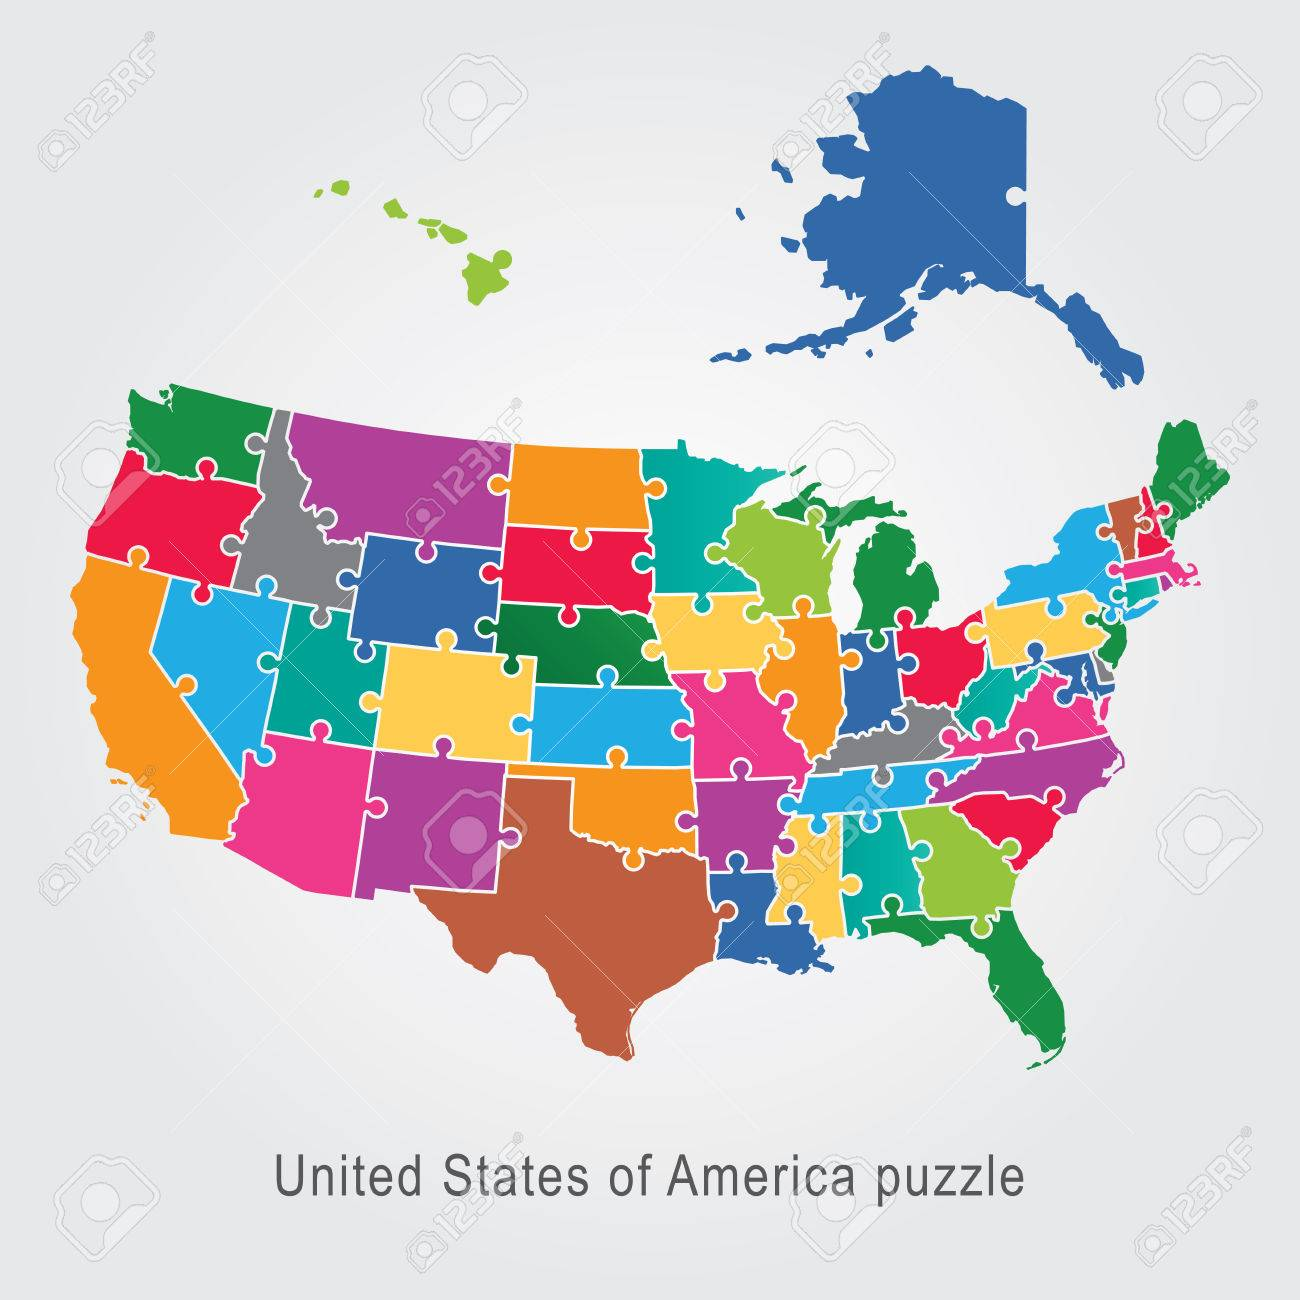 Usa Administrative Map Puzzle Royalty Free Cliparts Vectors And